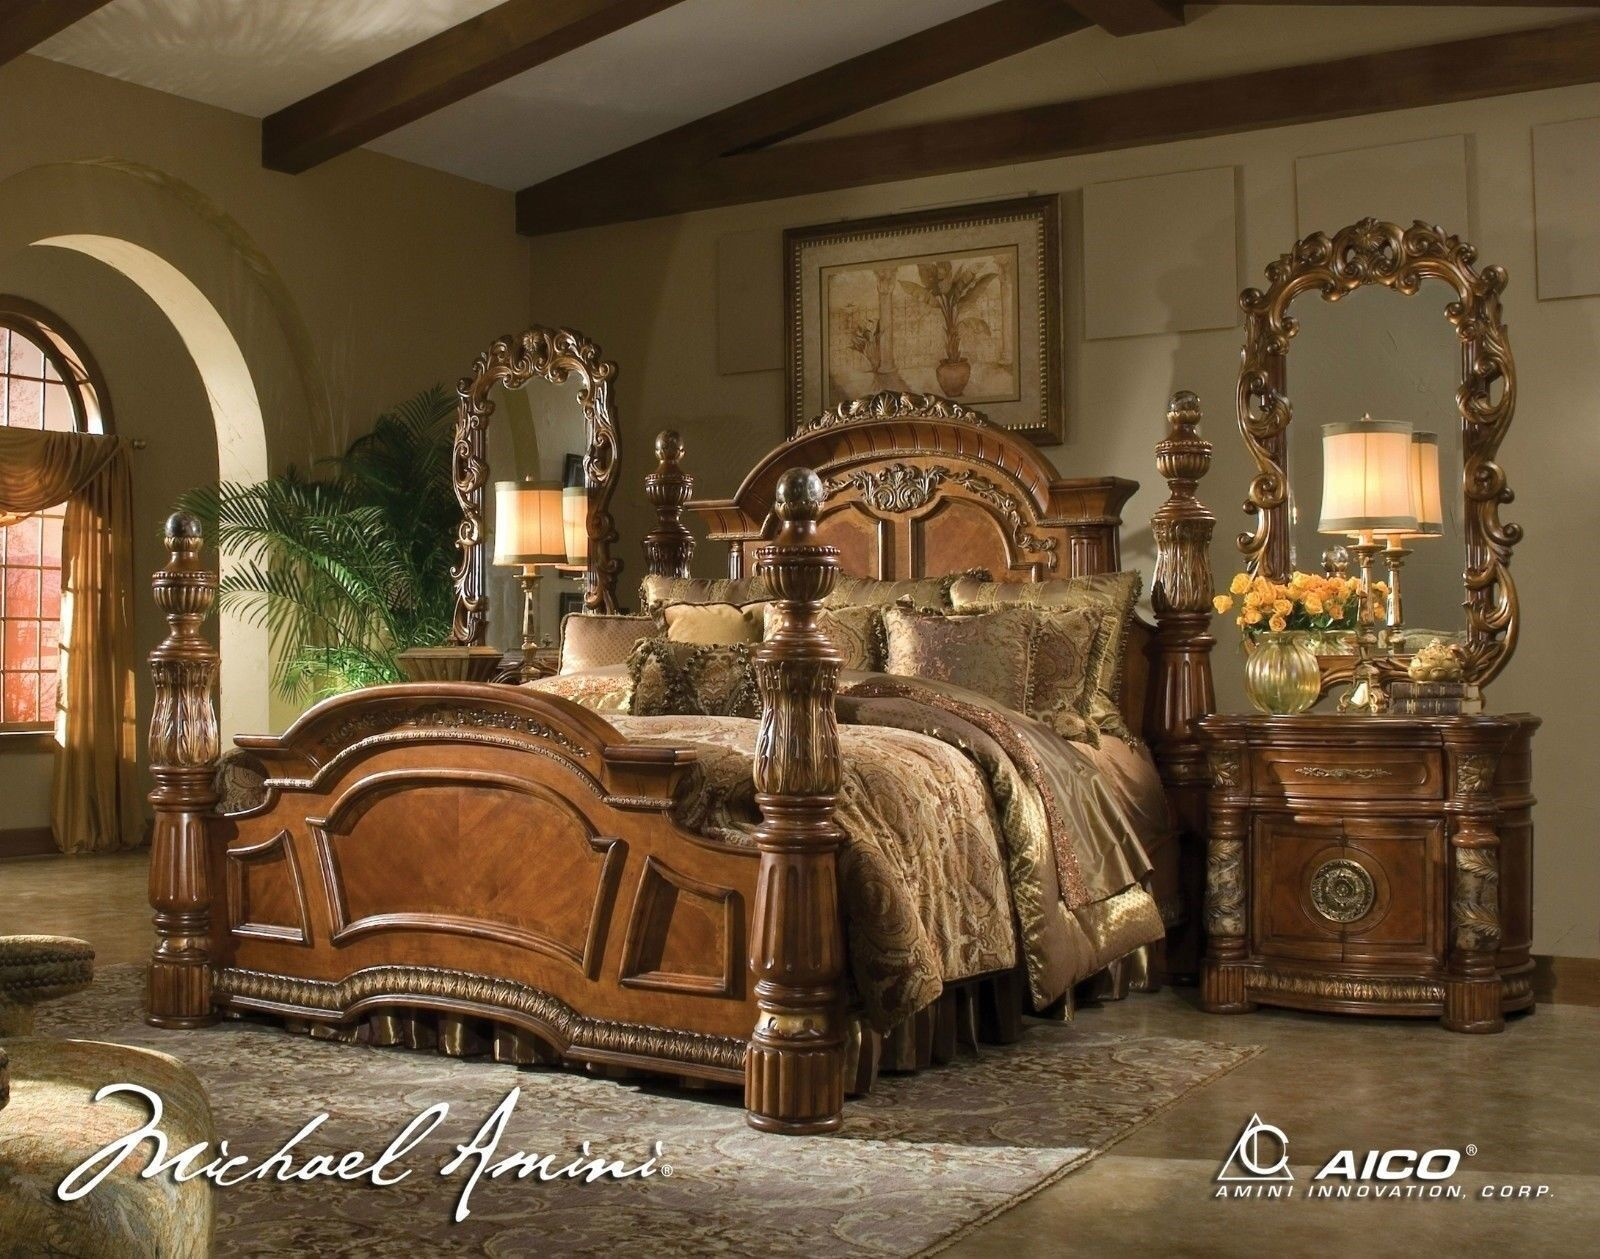 Details About Michael Amini Villa Valencia Traditional Luxury King Sz 4 Poster Bed Bedroom Set